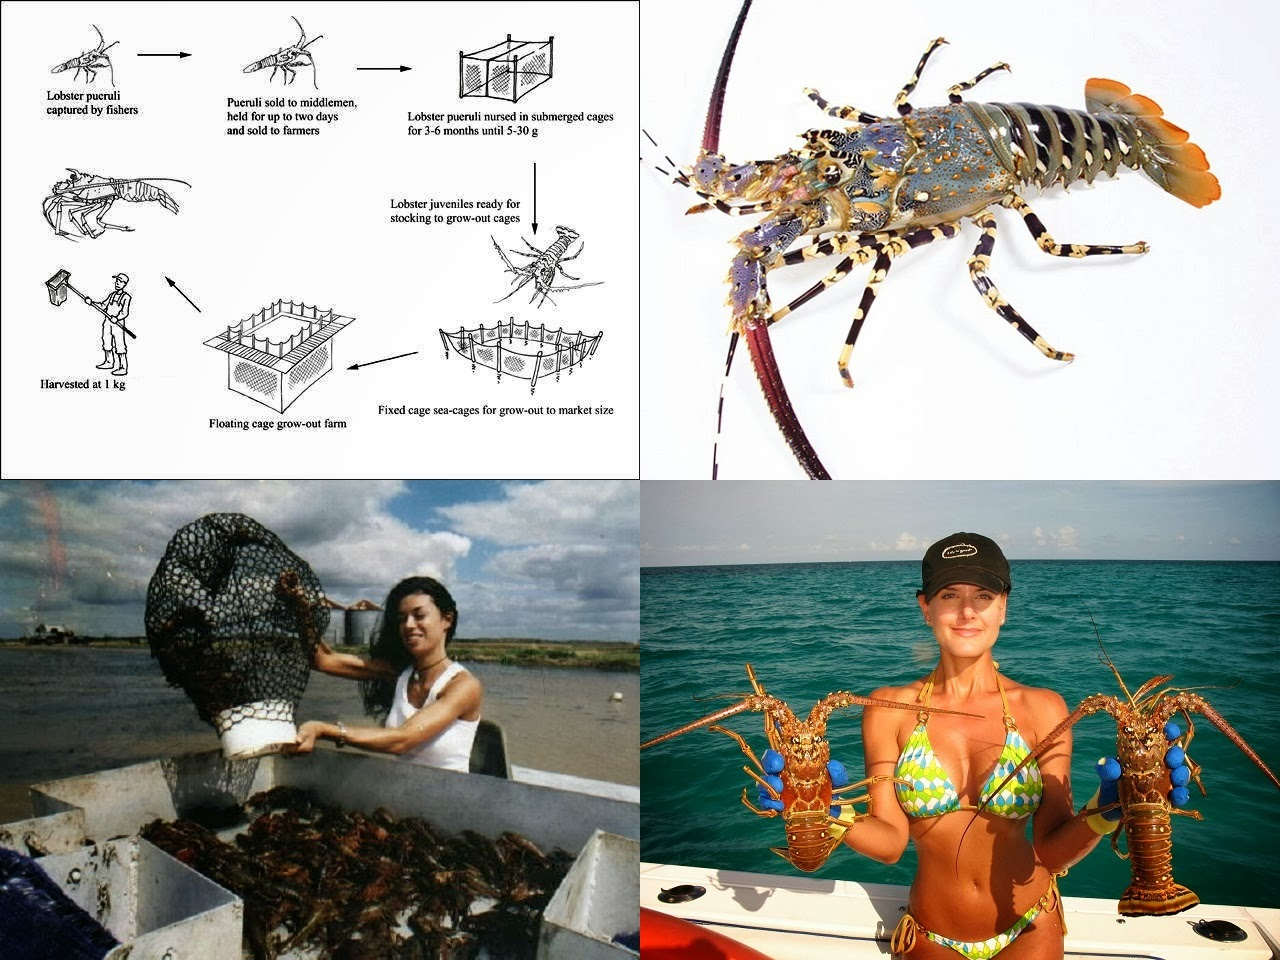 How to Starting a Lobster Farming Business